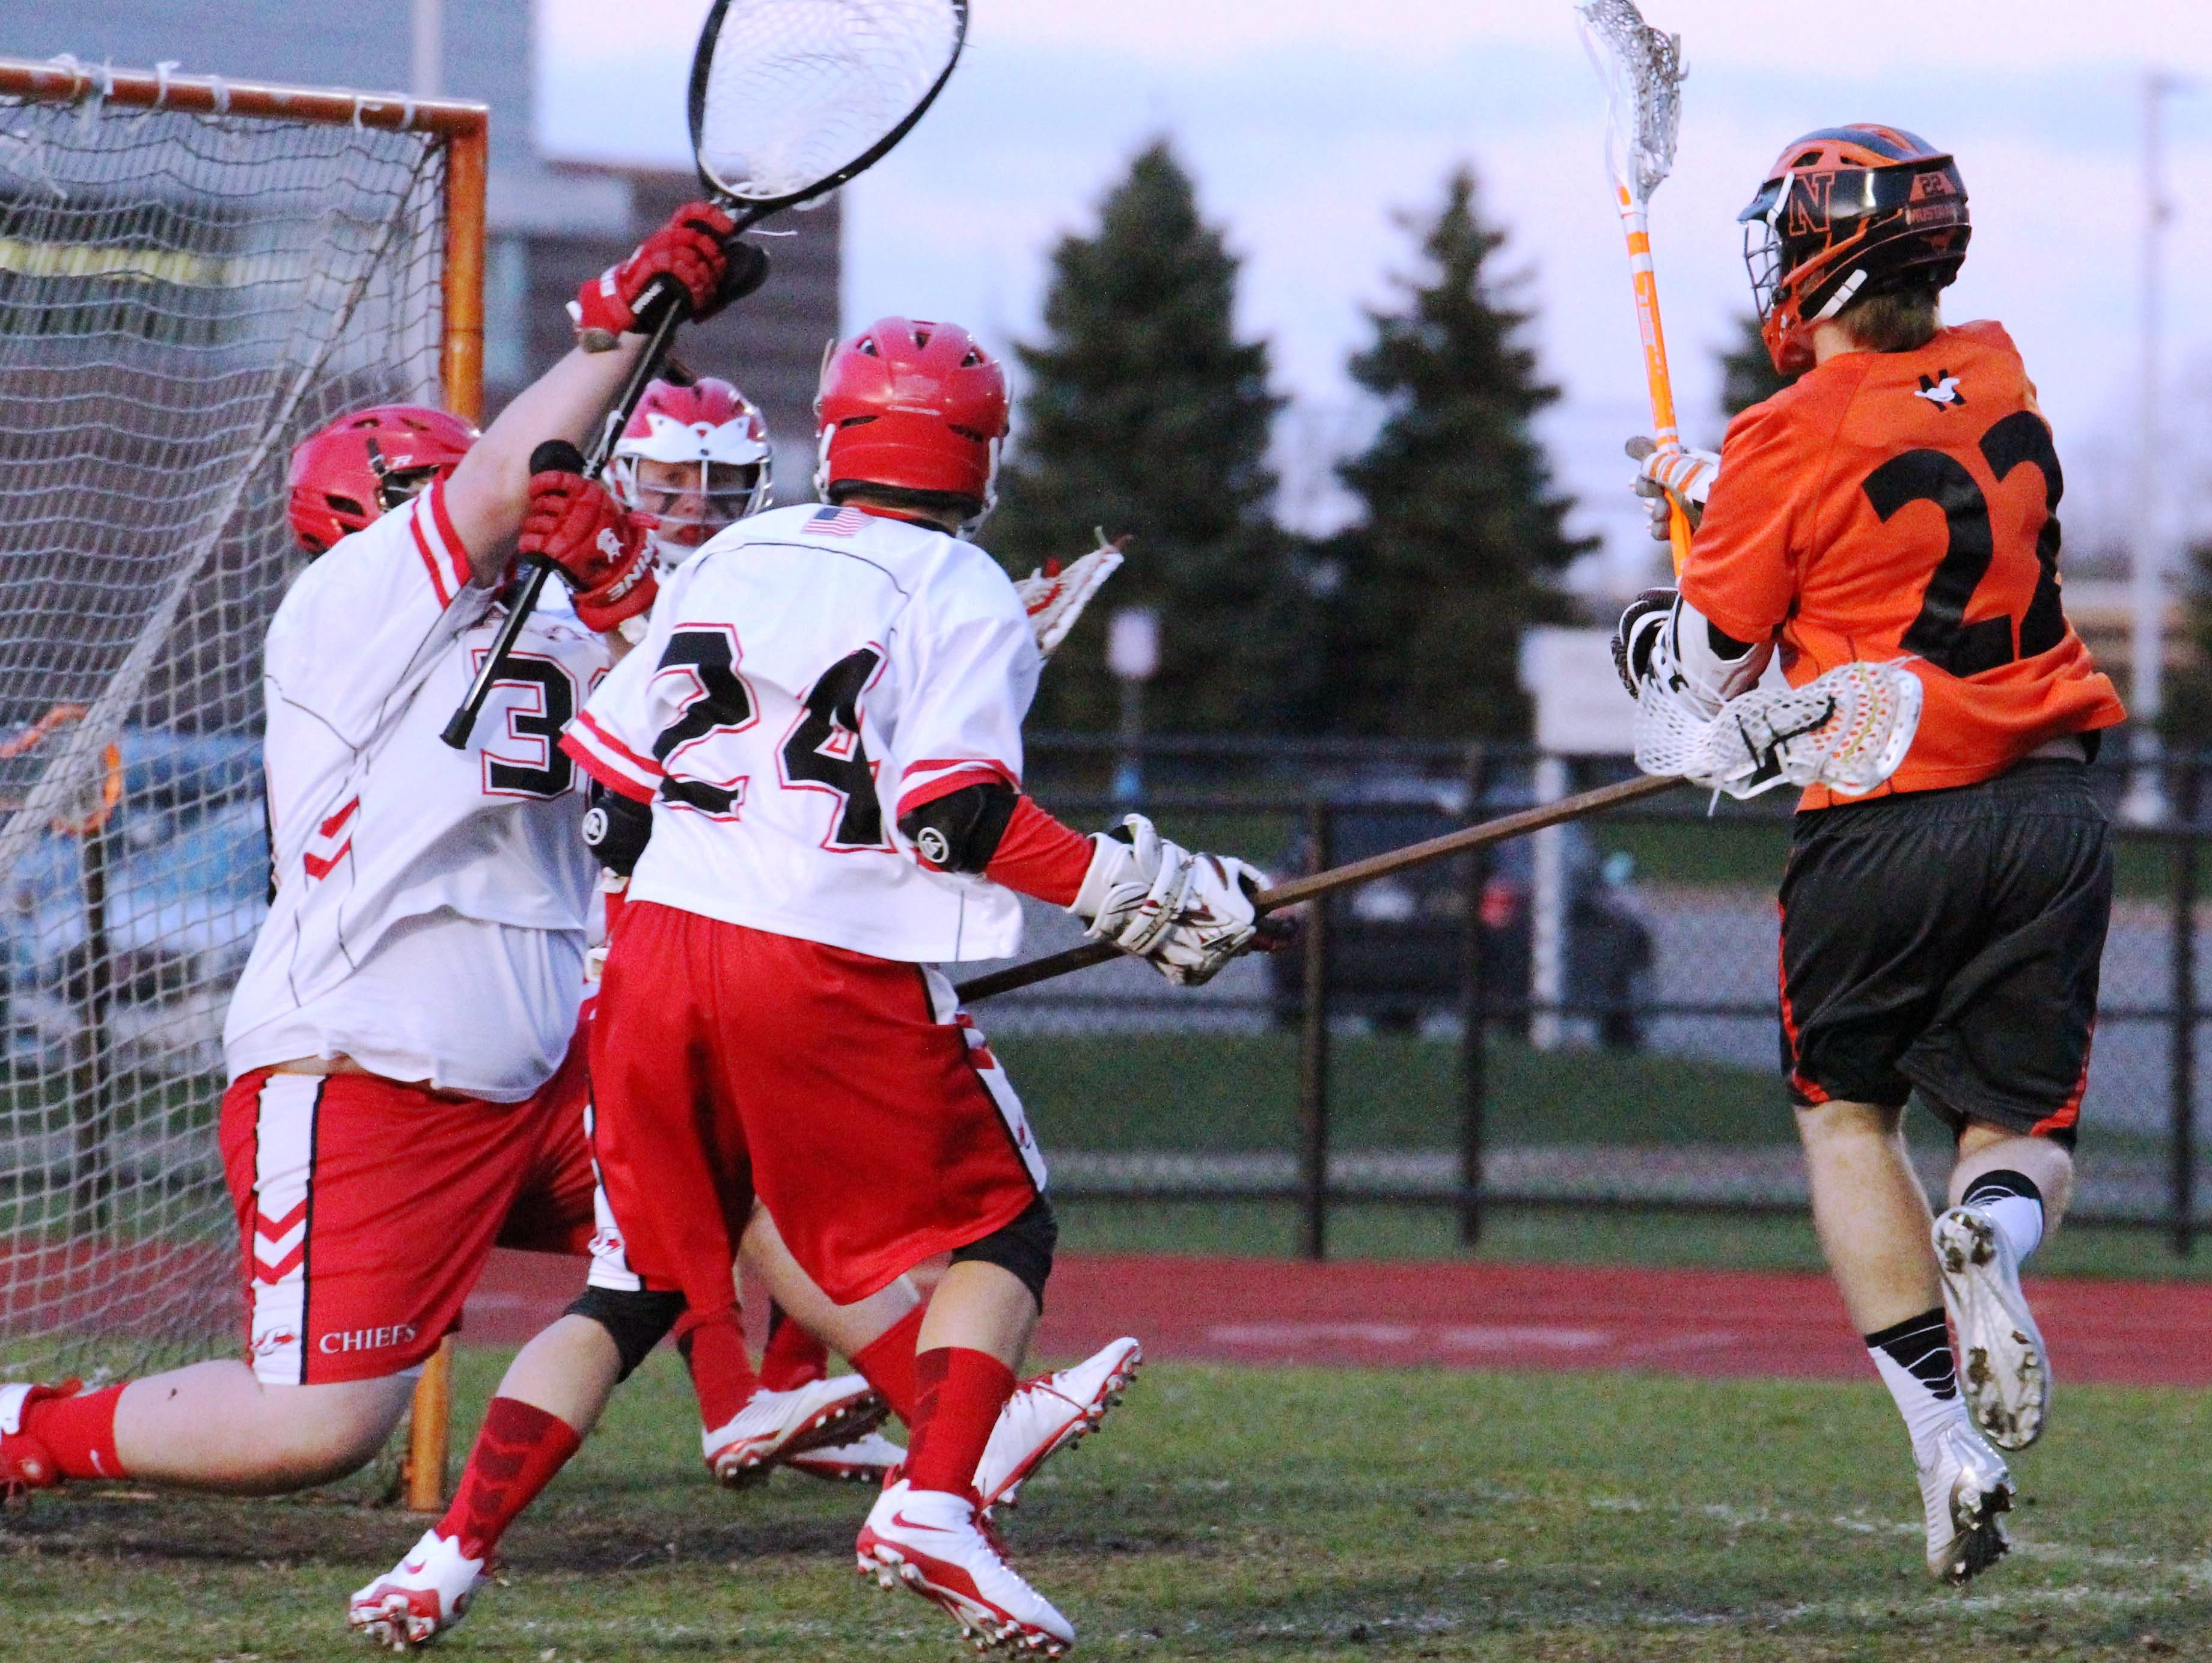 Northville's Connor Sweeney (right) takes aim at the Canton goalie in Monday's 16-4 conference win.